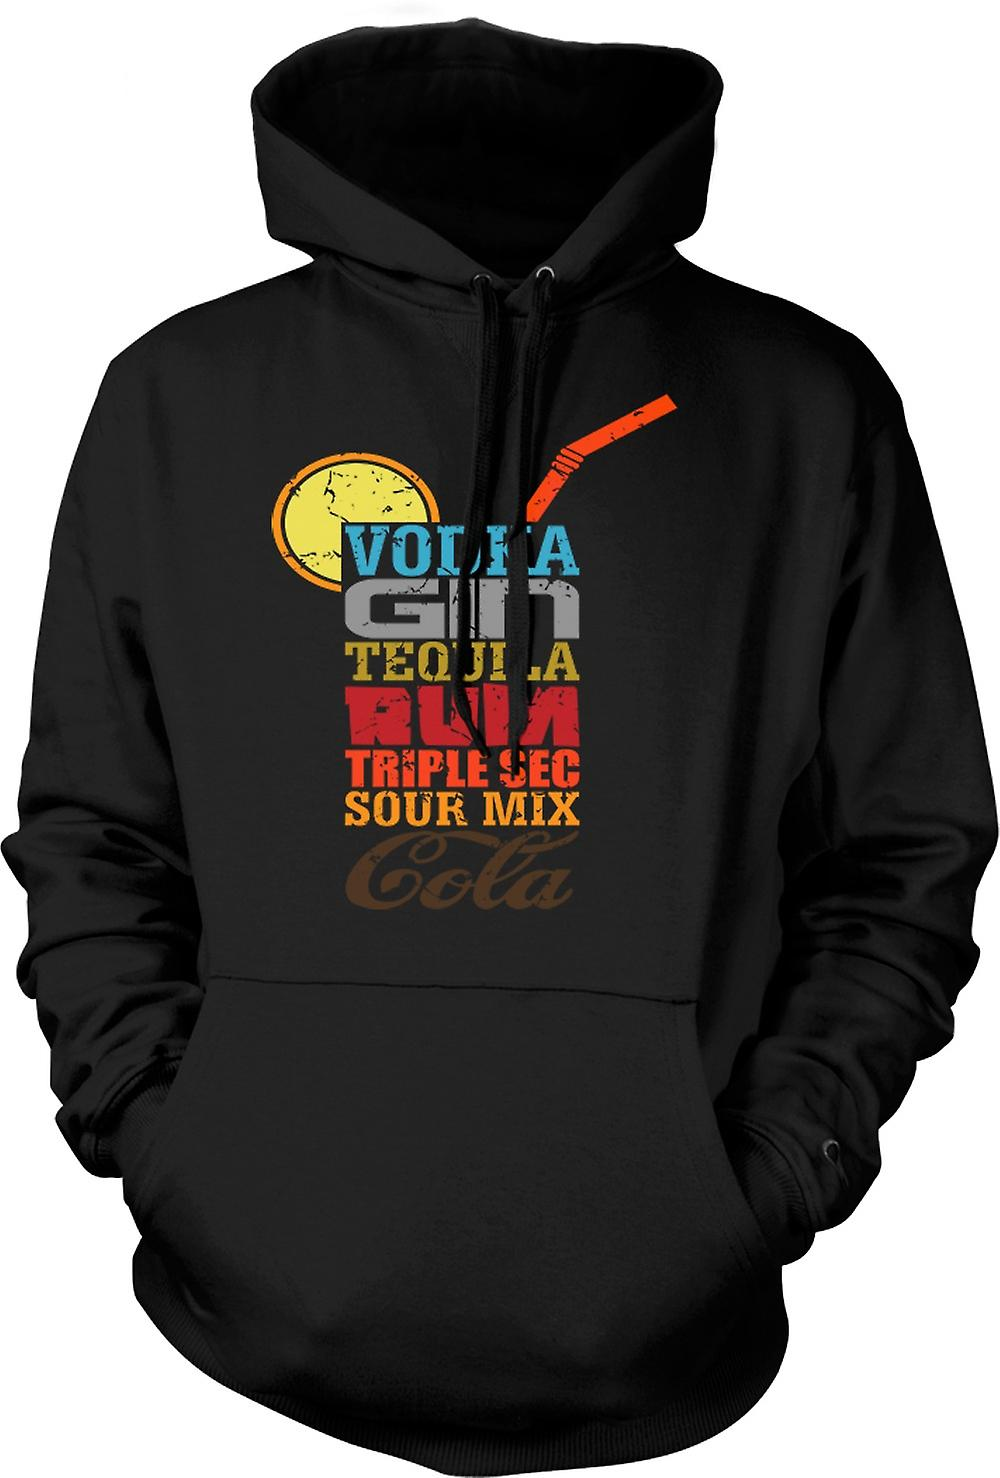 Mens Hoodie - Long Island Iced Tea - Cool